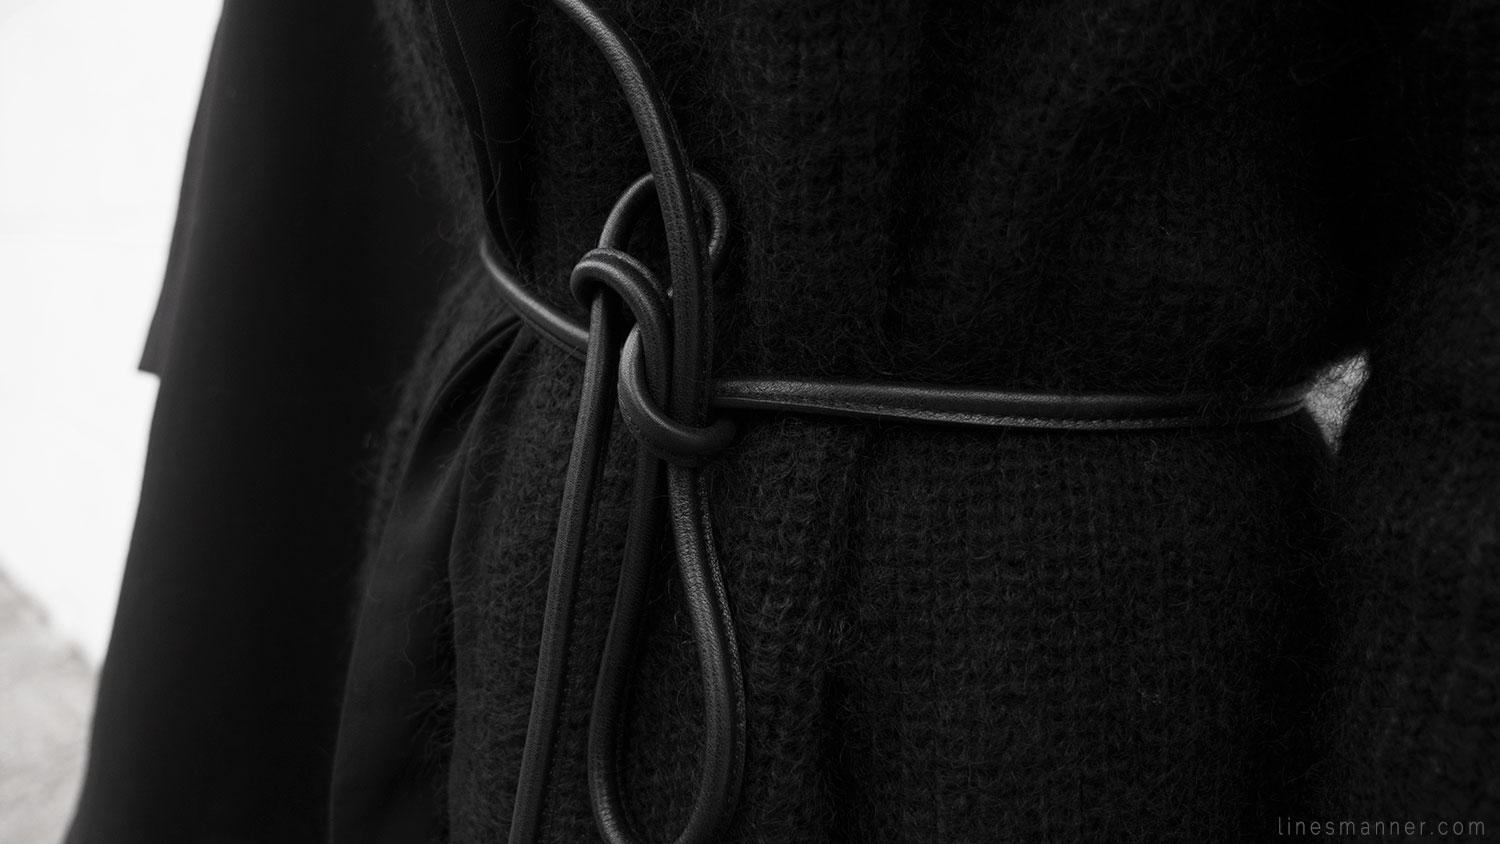 Lines-Manner-Remind-2015-Minimal-Essential-Outfit-Inspiration-Blog-Timeless-Year-Seasons-Details-Travel-Fashion-Versatile-Clean-Sleek-Quality-31